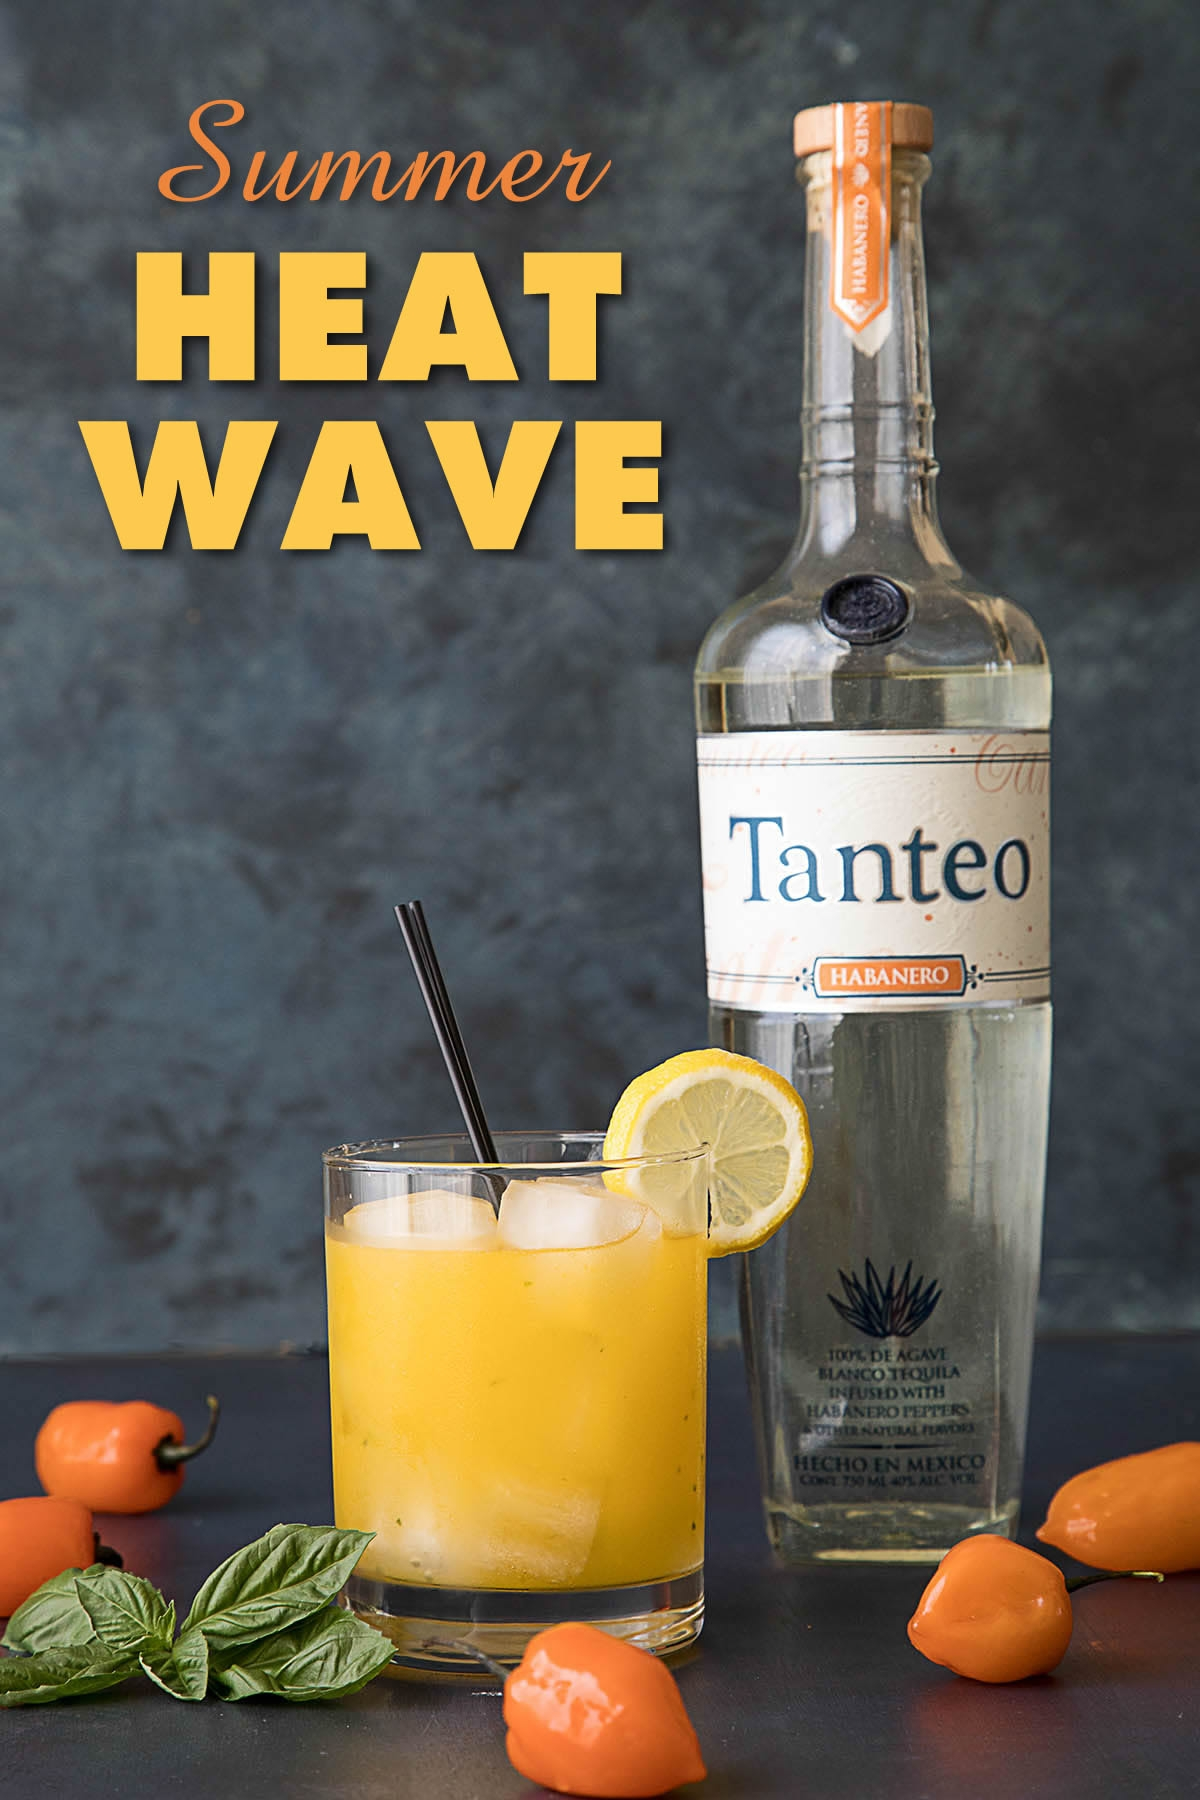 The Summer Heat Wave – A Fiery Mango-Habanero Cocktail